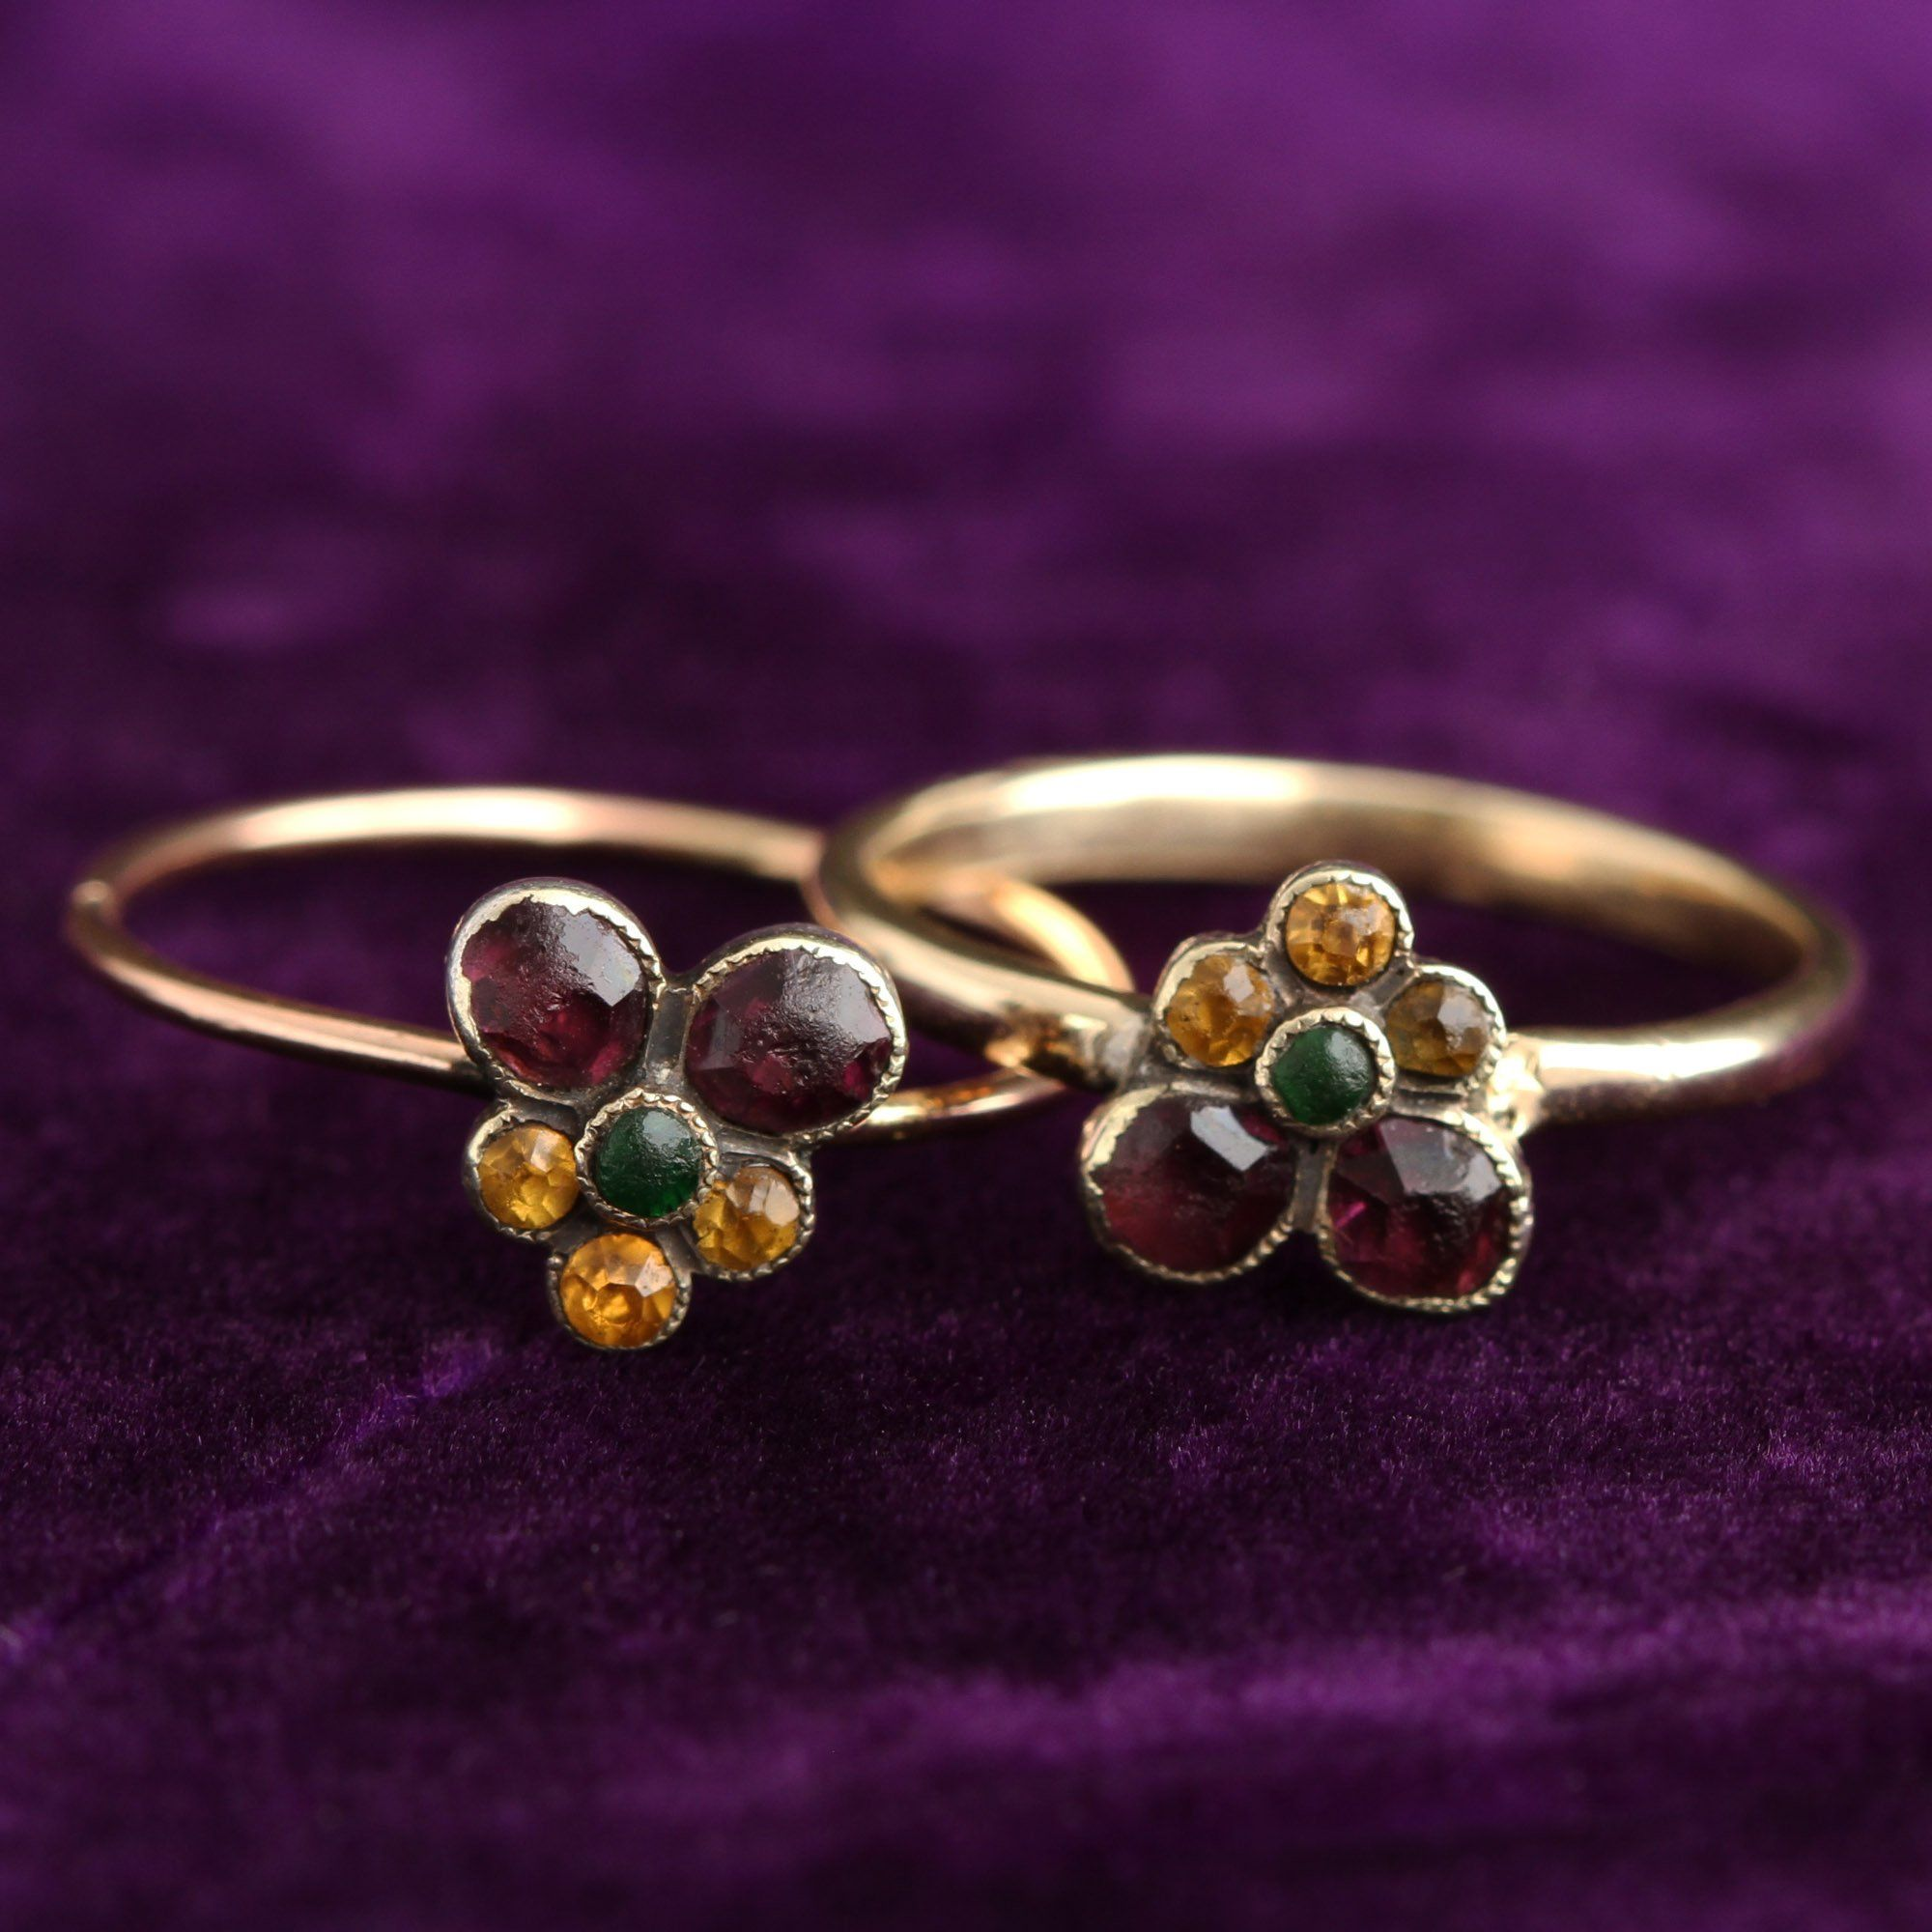 Detail of French Amethyst, Emerald and Citrine Pansy Ring